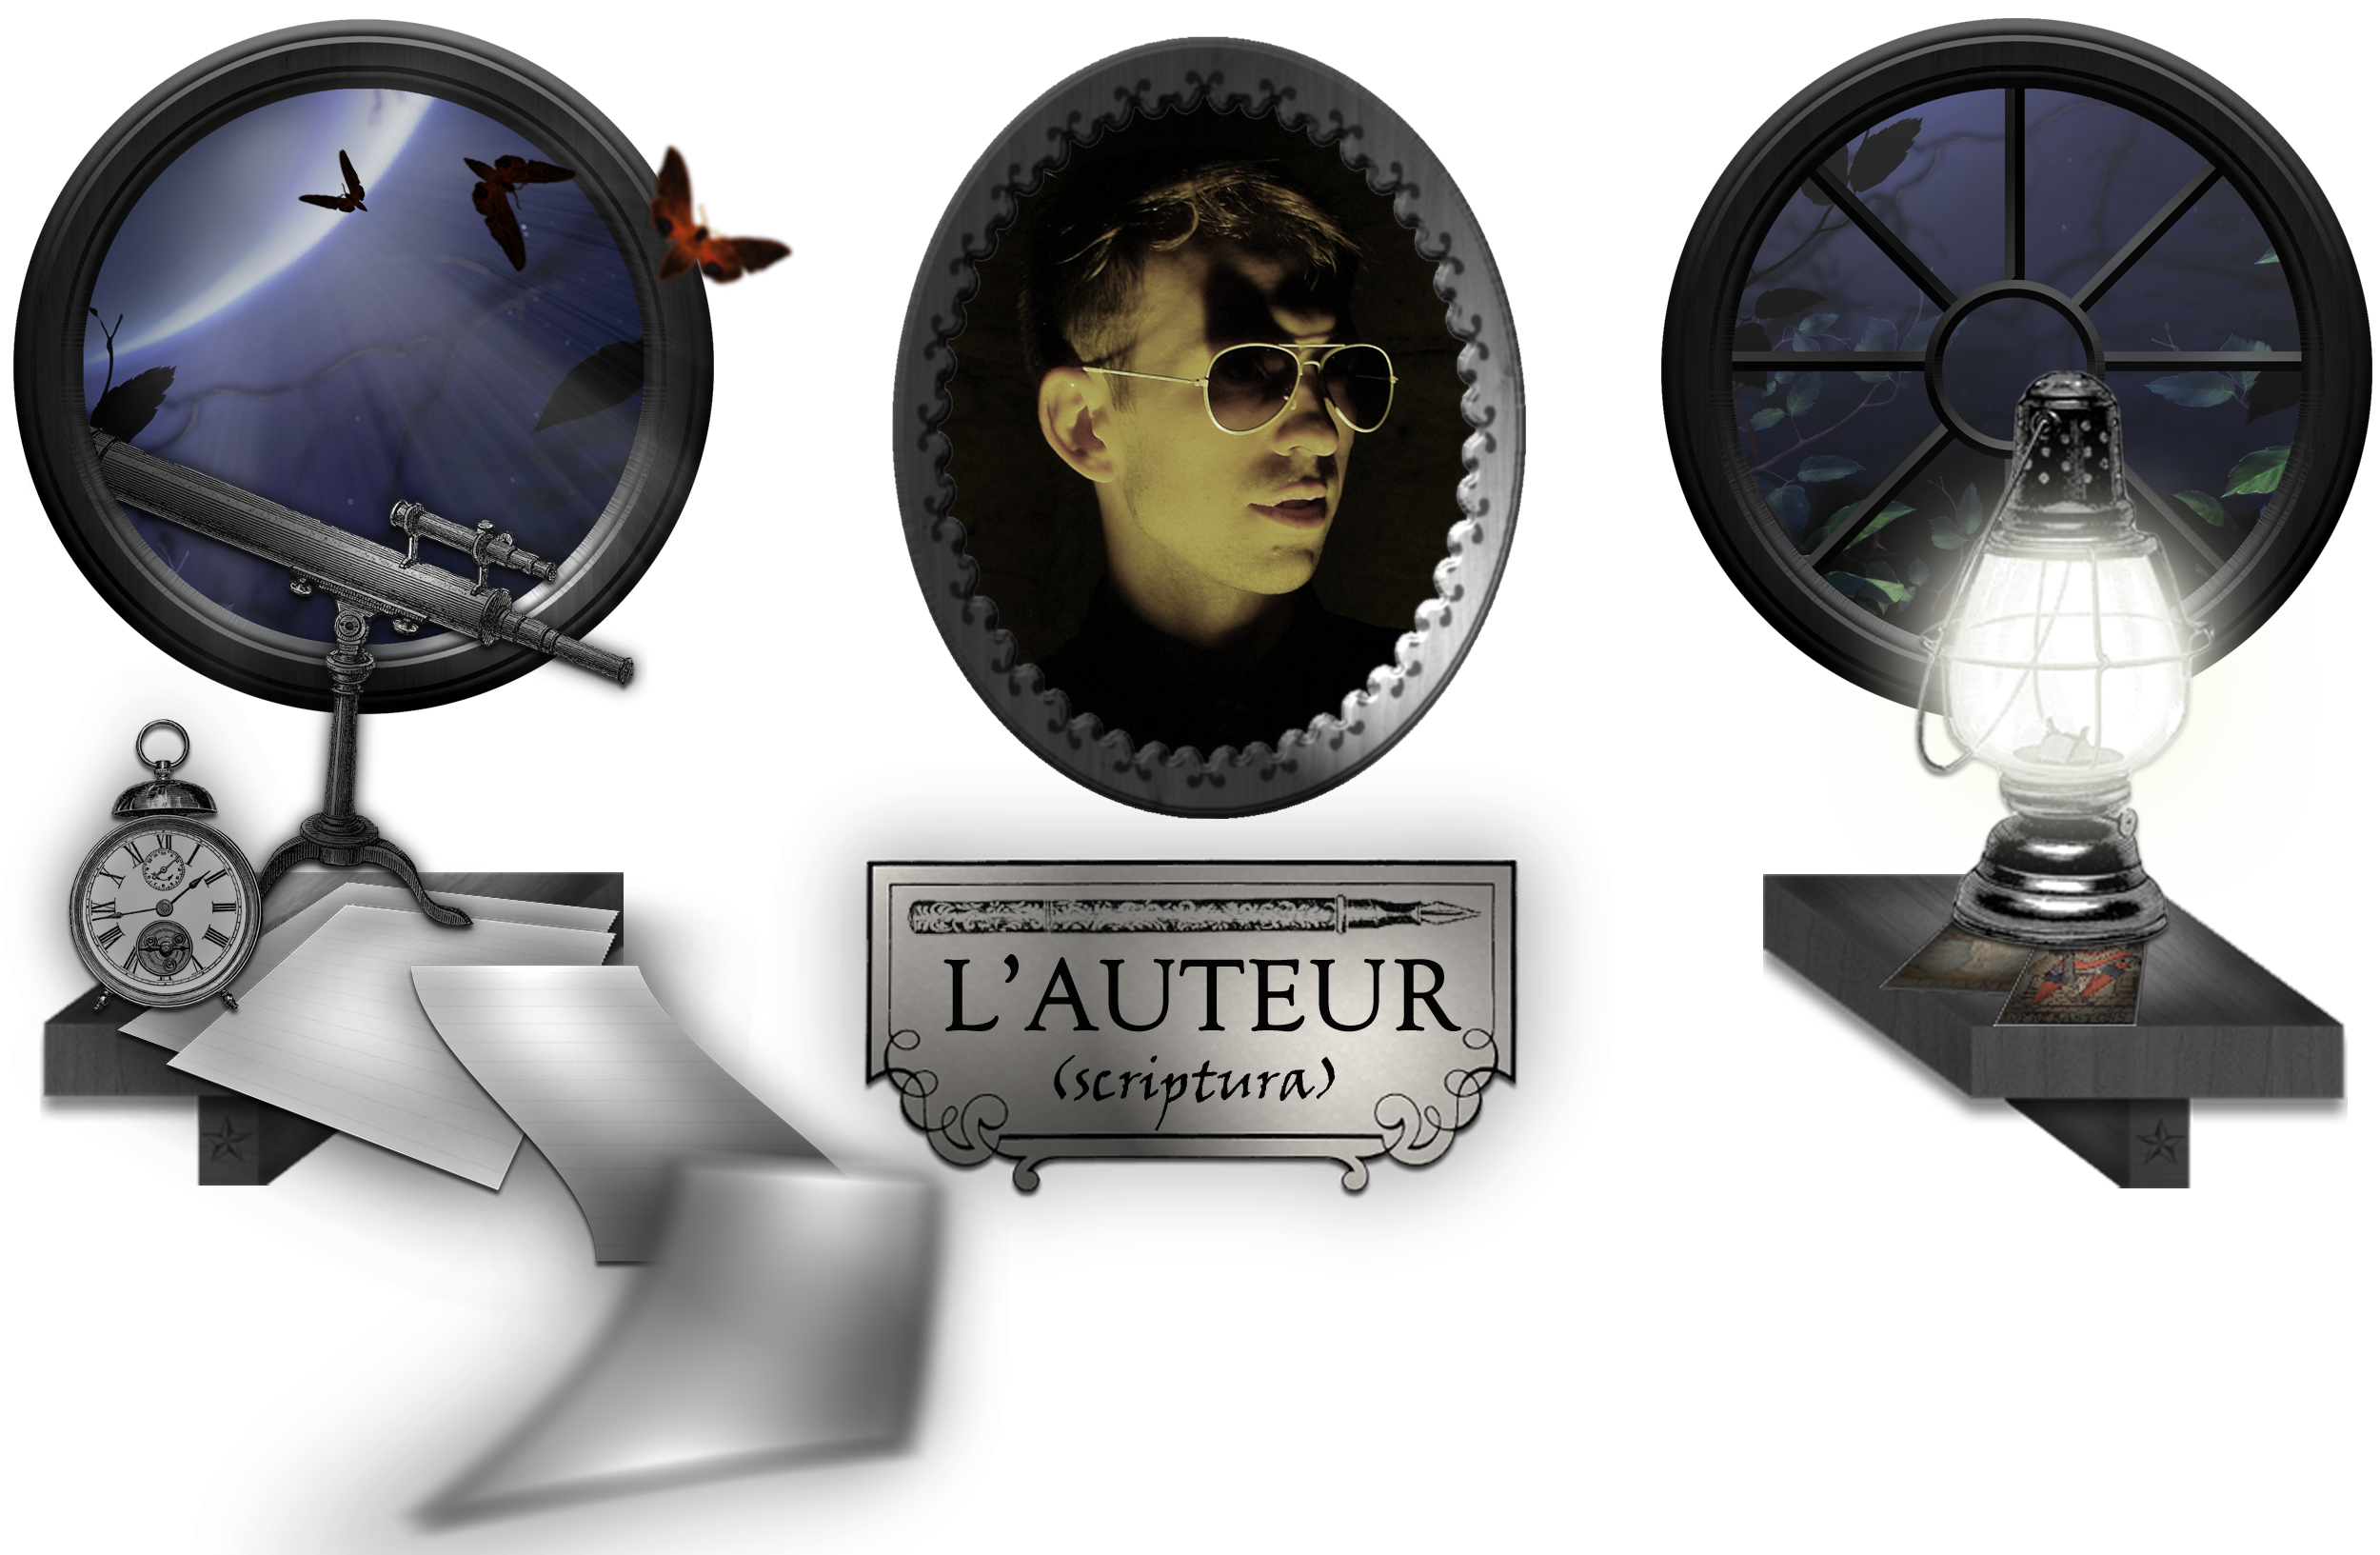 FOND VICTOR LUCARNES moins lumineux.png